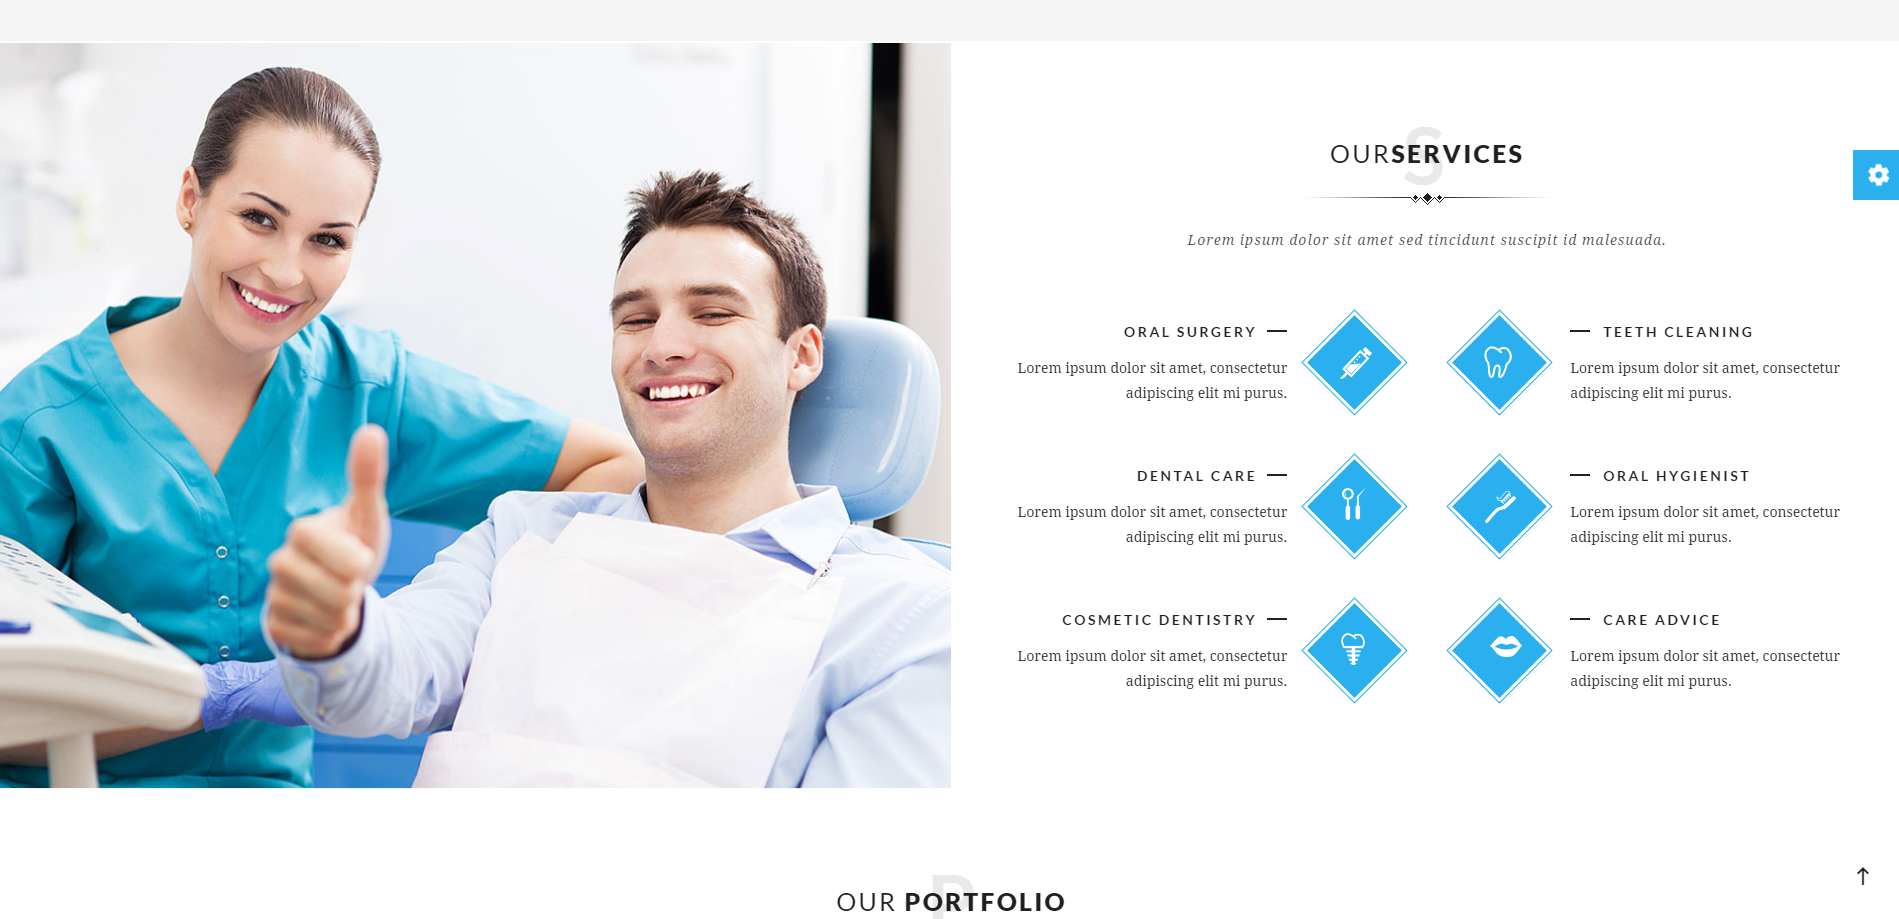 health medical wordpress themes,health care medical wordpress theme dentist-medicare-theme-medical-theme-wordpress-health-theme-wordpress-healthcare-theme-wordpress-medical-center-theme-best-medical-wordpress-theme-best-health-wordpress-theme